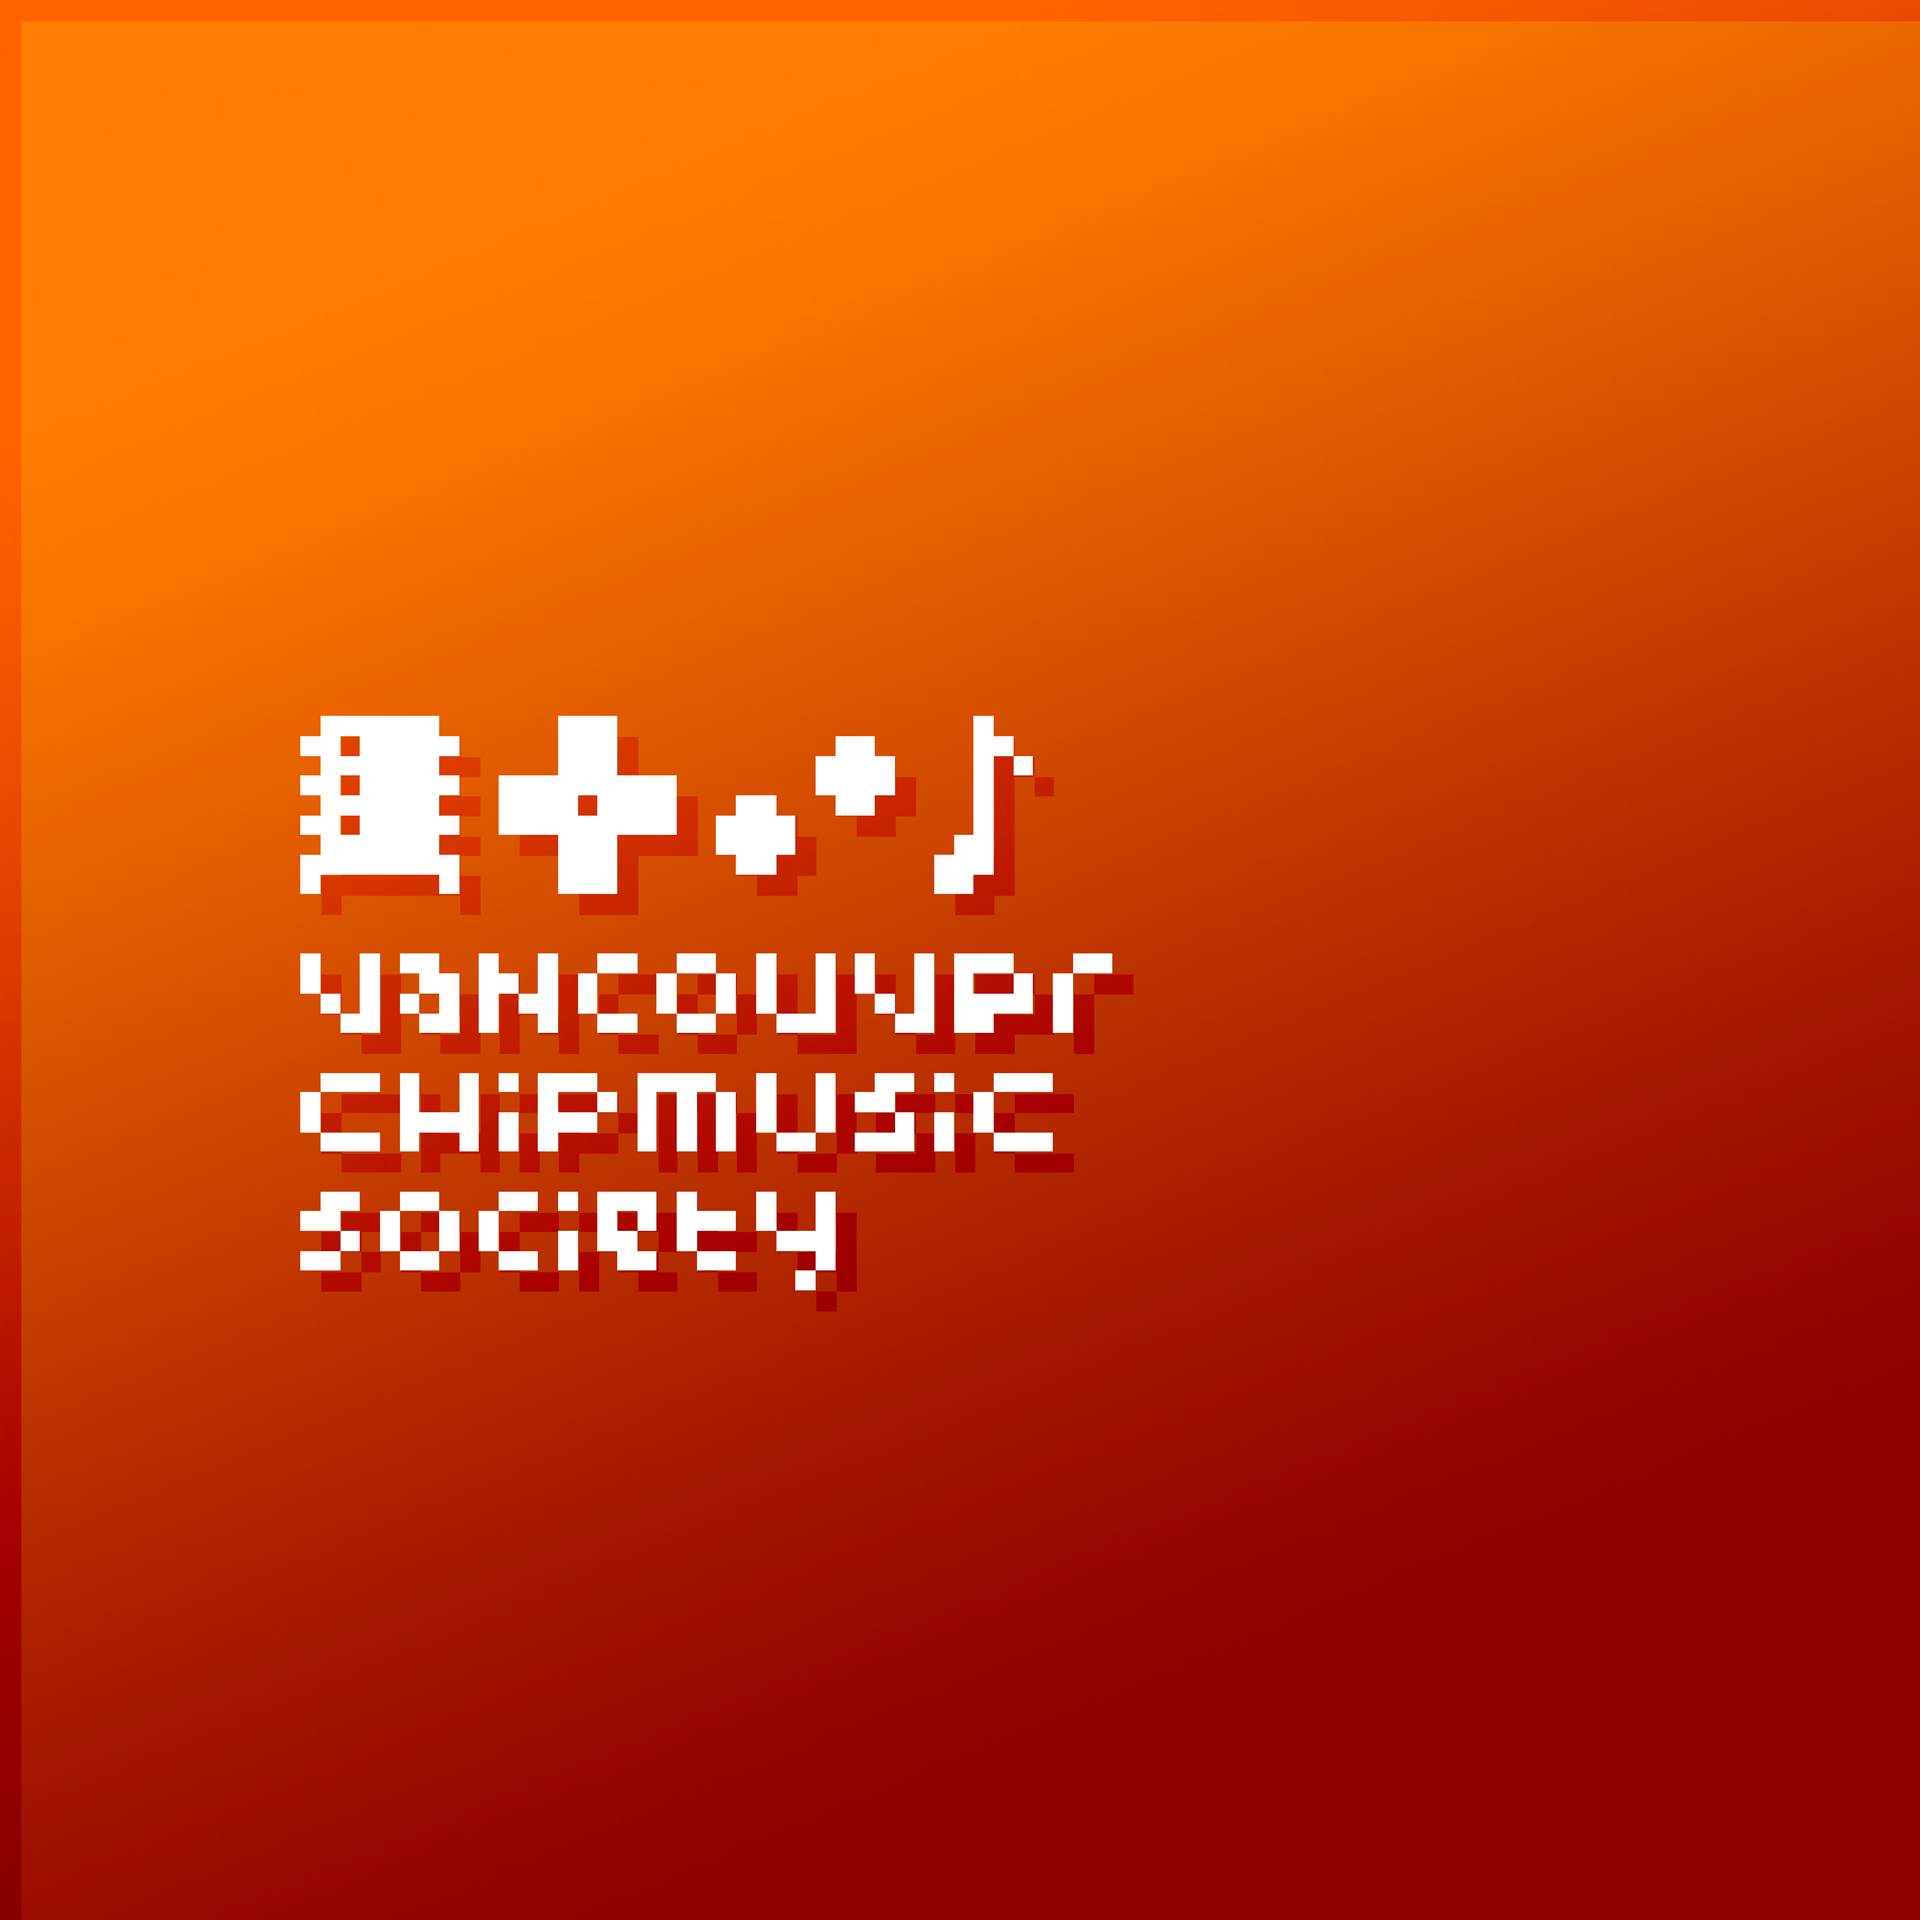 Vancouver Chipmusic Society